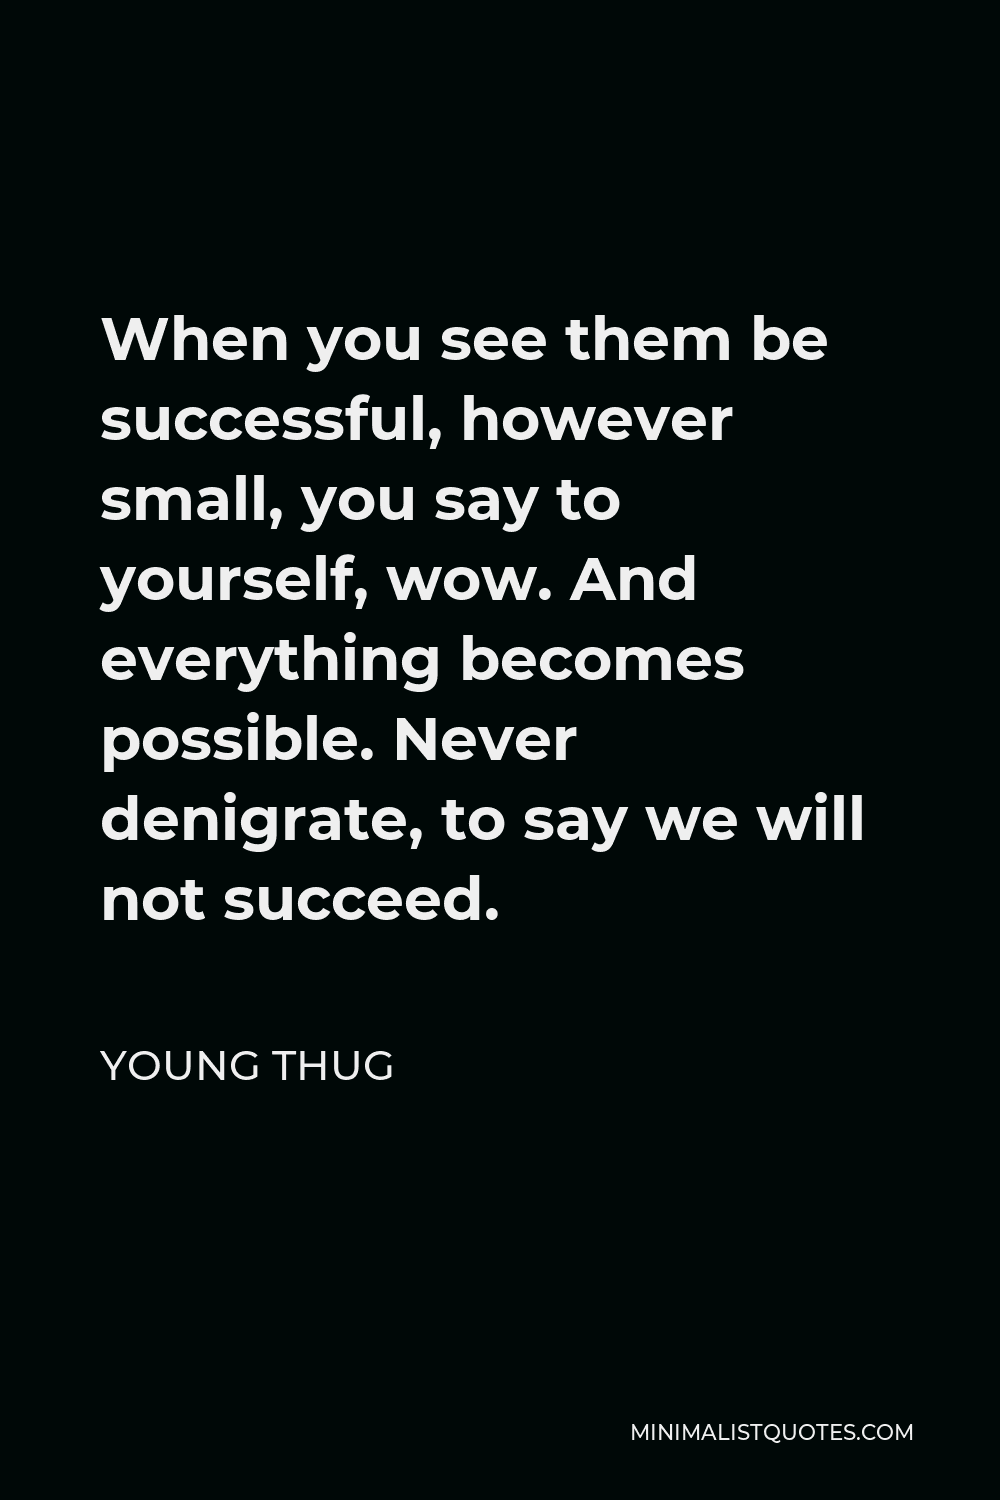 Young Thug Quote - When you see them be successful, however small, you say to yourself, wow. And everything becomes possible. Never denigrate, to say we will not succeed.